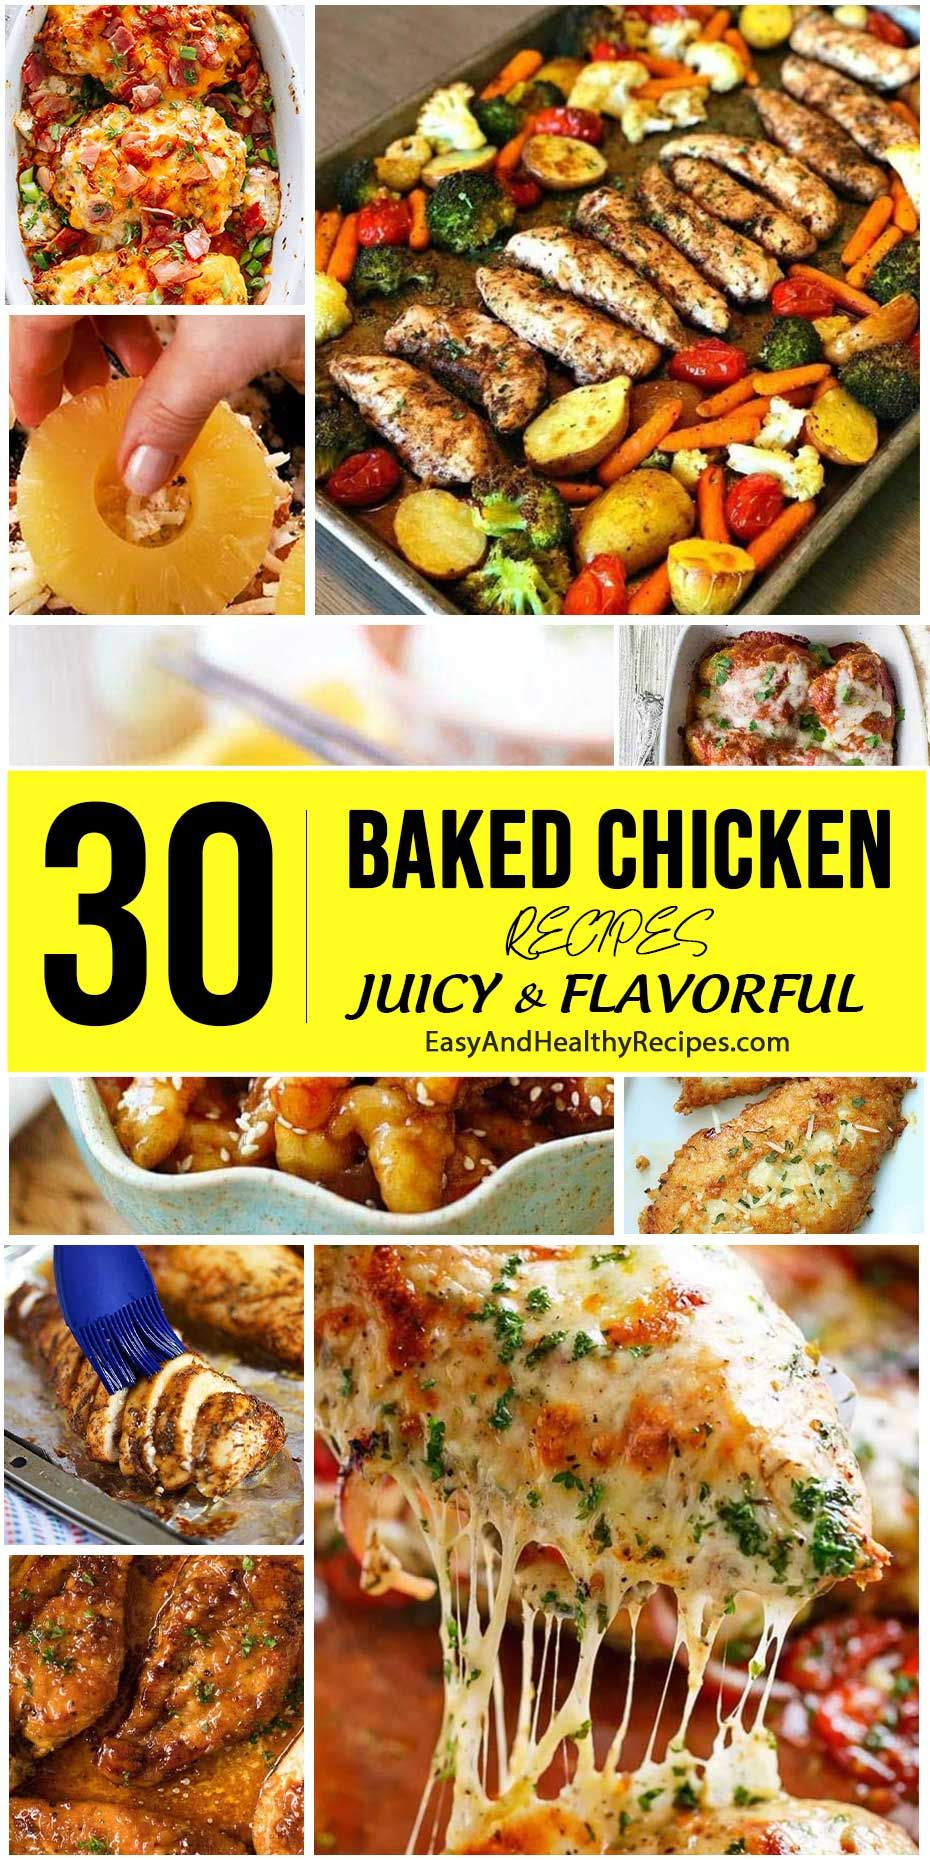 30 Baked Chicken Recipes So Juicy Food Network Cooking In